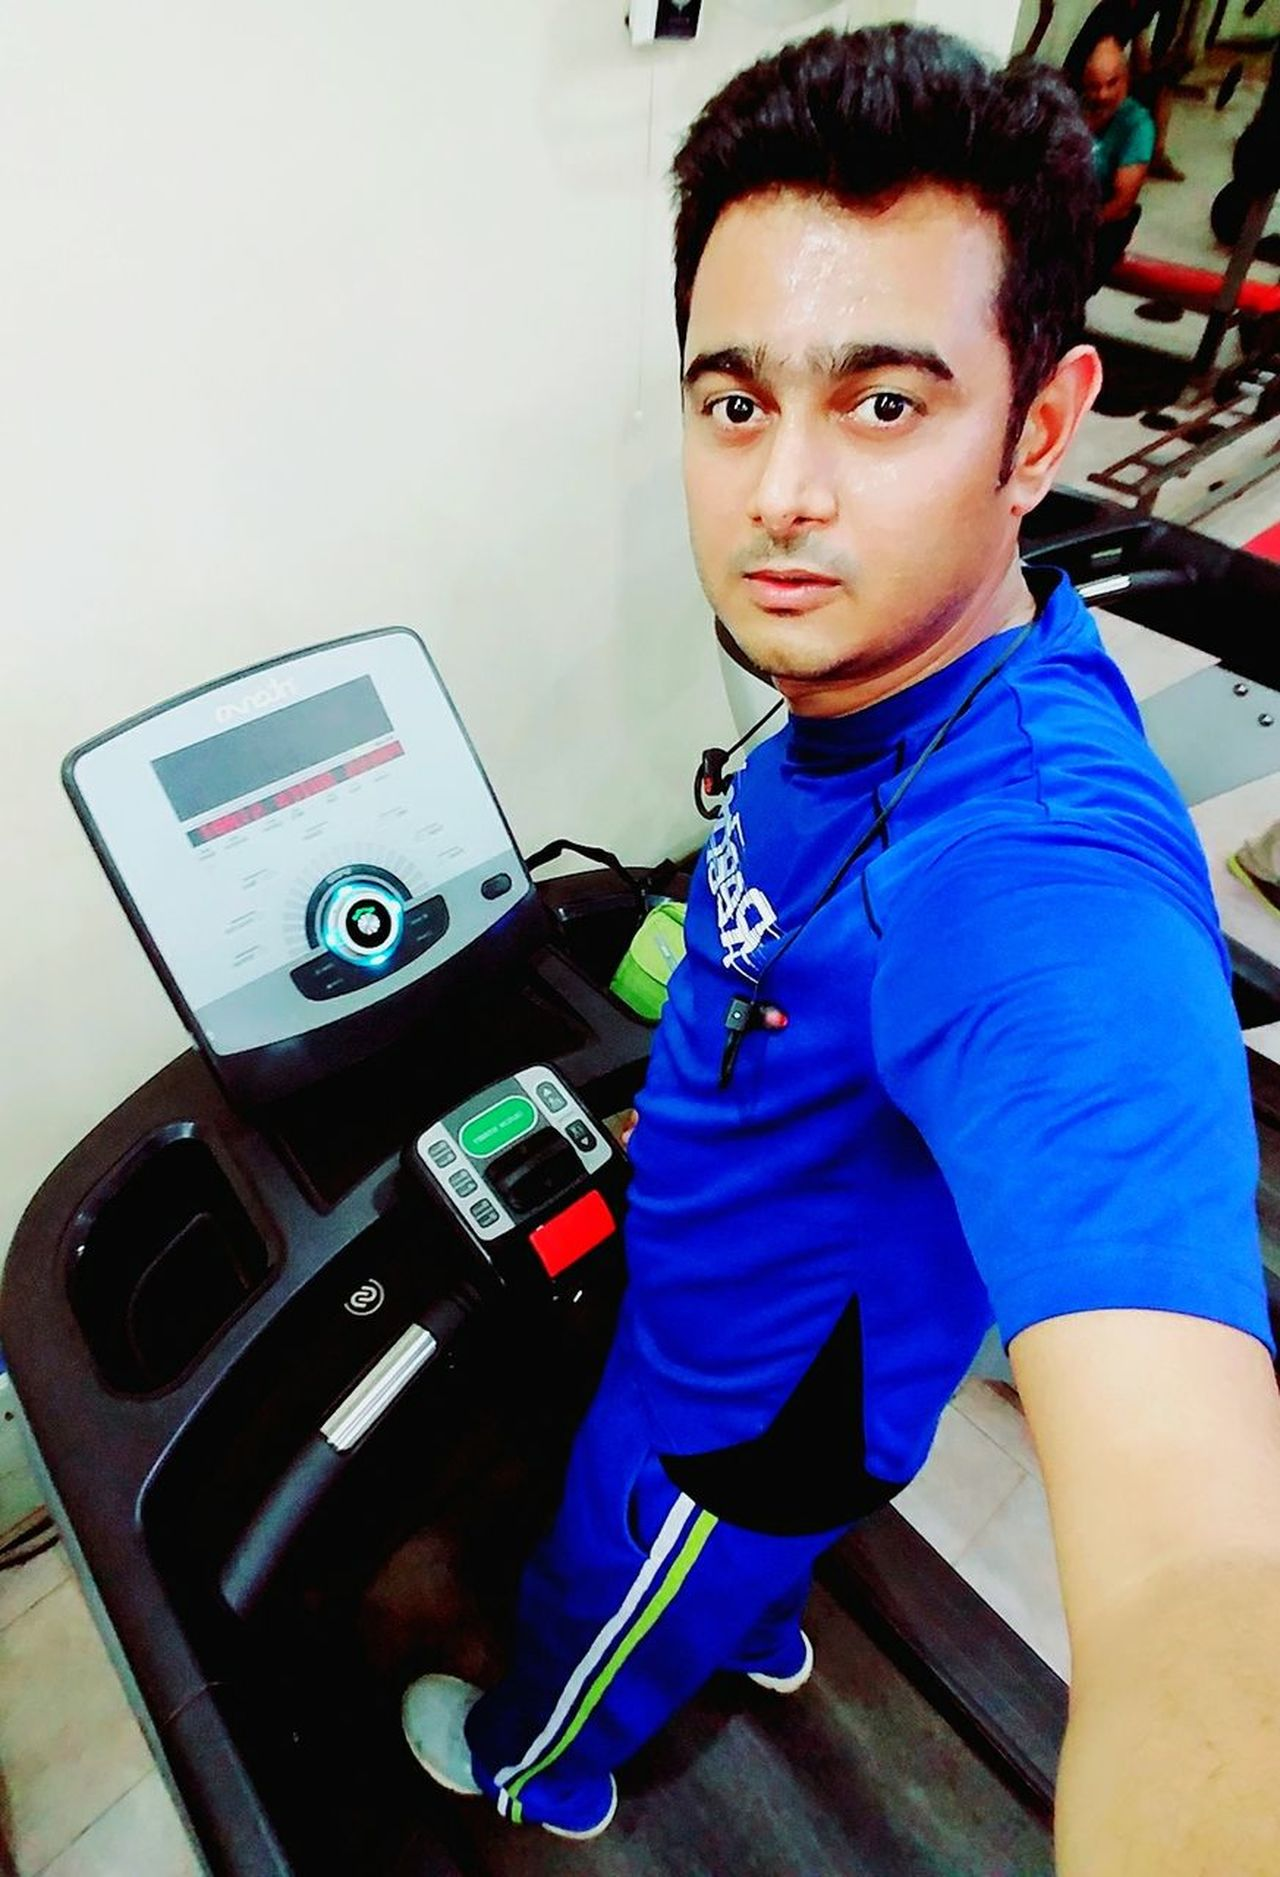 Confidence  Sport Hi! Man Karachi Check This Out Rathod Actor Pakistan Glamour Hello World That's Me Today's Hot Look HERO Burning Calories Fitnesslifestyle  Lifestyles Excercise Treadmill Fitnesslifestyle  Happiness Only Men Outdoors Fitnesslifestyle  One Person